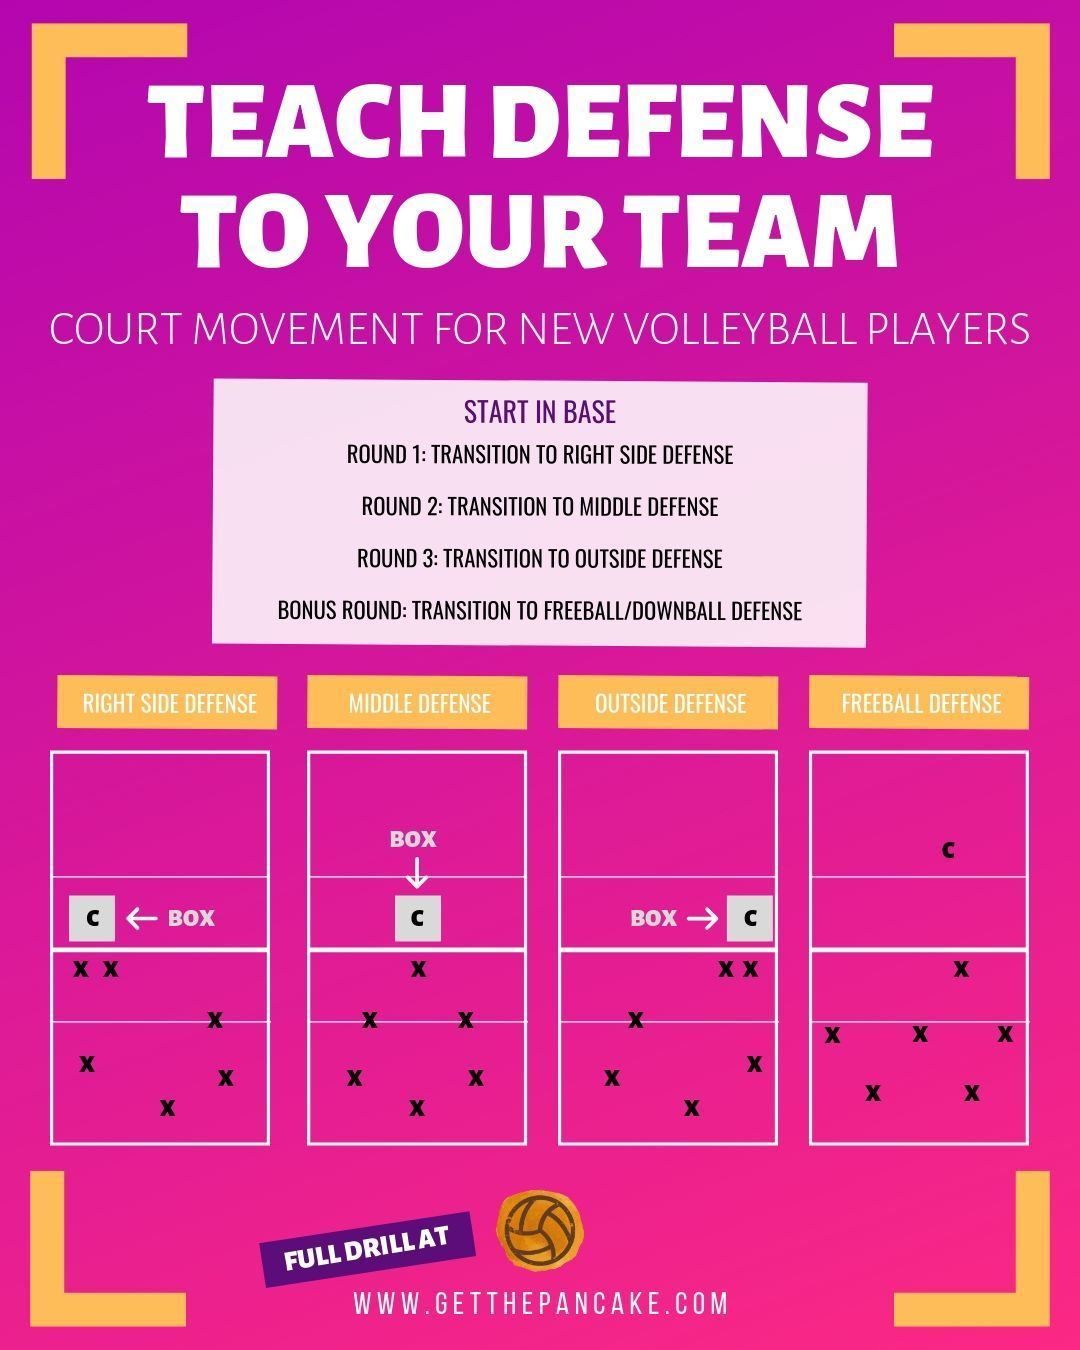 Best Volleyball Matches Teach Defense To Your Team Teach Defense To Your Team In 2020 Coaching Volleyball Volleyball Workouts Volleyball Training